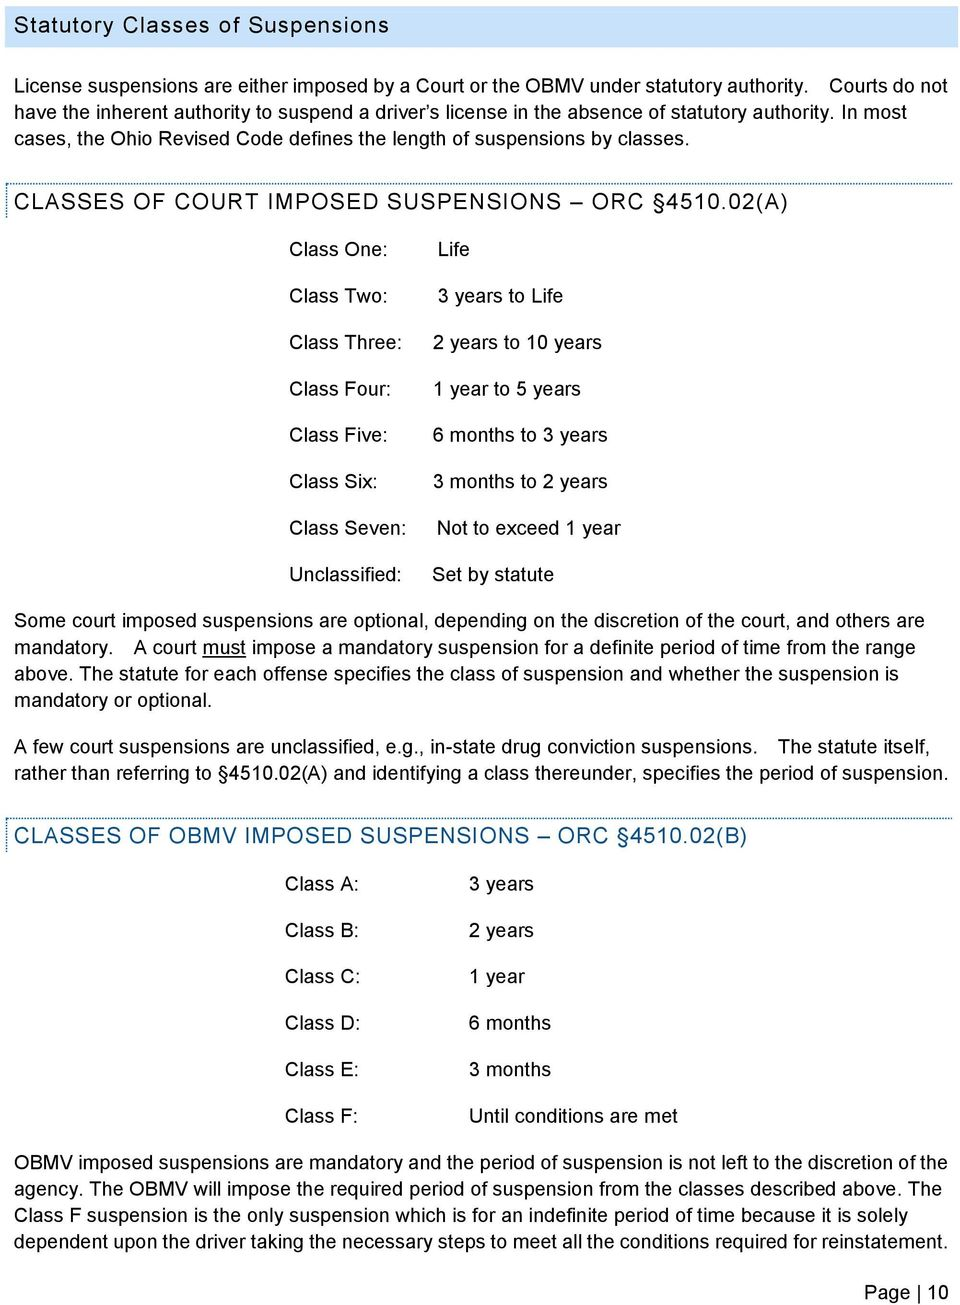 CLASSES OF COURT IMPOSED SUSPENSIONS ORC 4510.